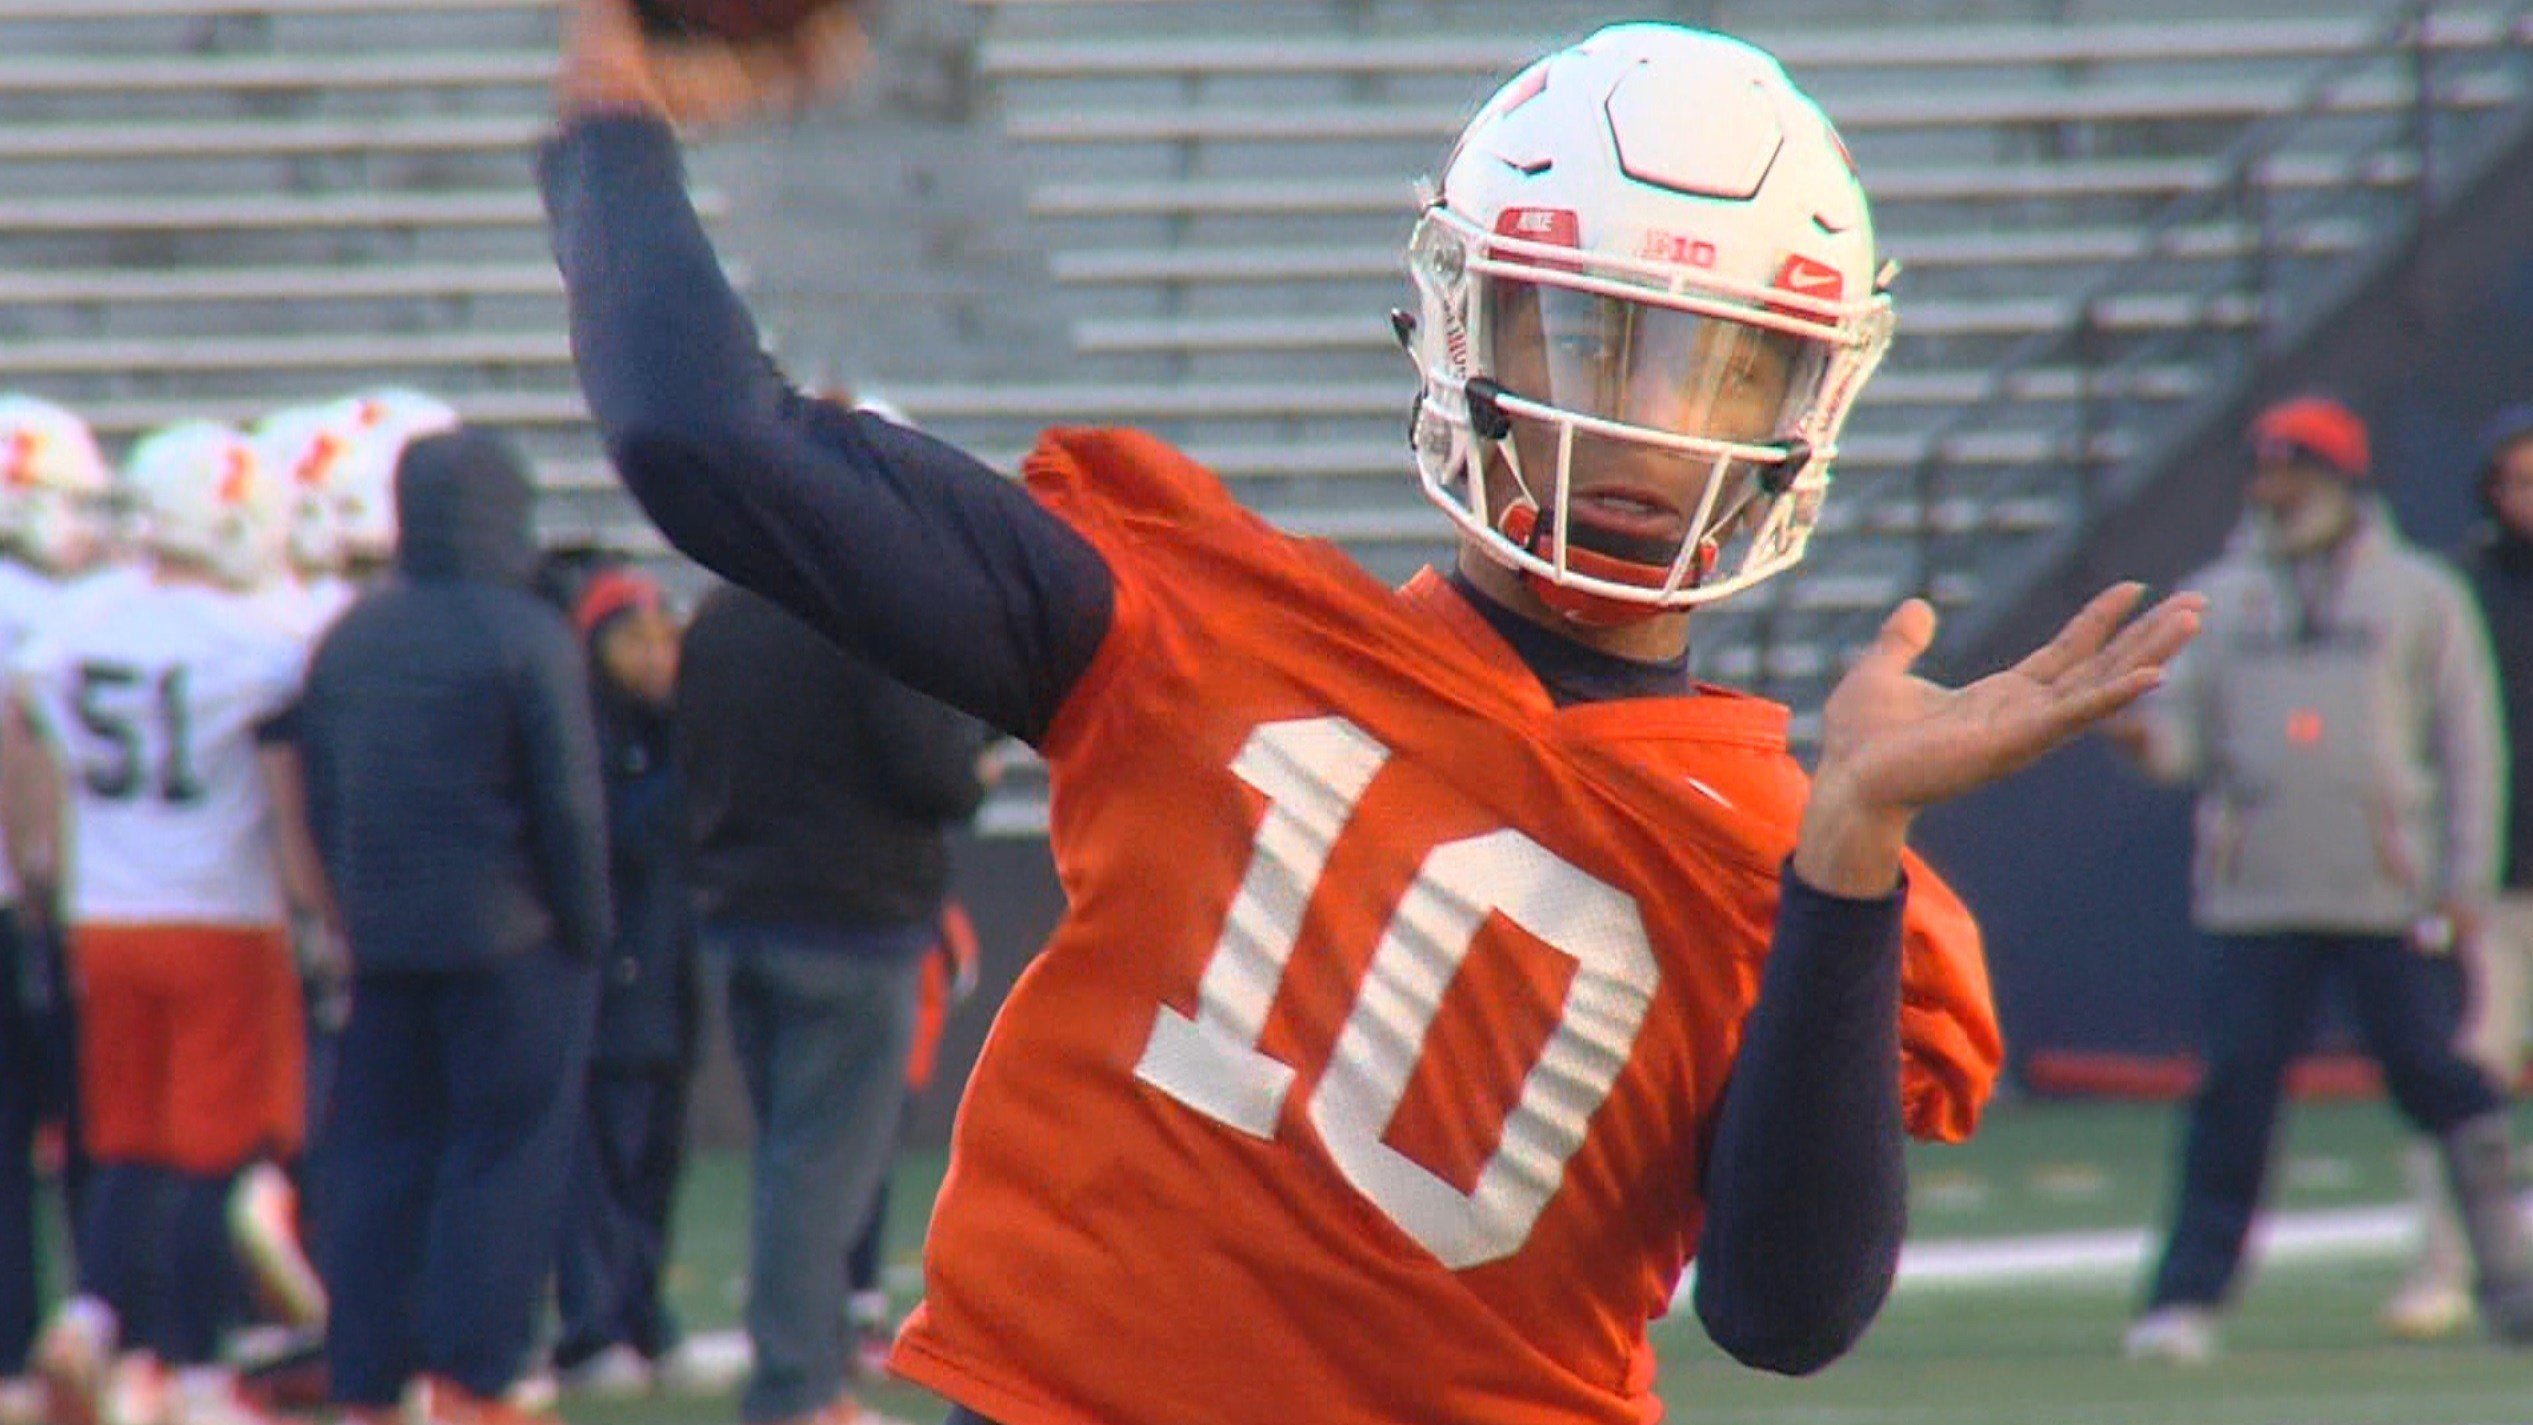 Rising sophomore Cam Thomas is the lone scholarship quarterback on the Illinois roster this spring, which means he's getting lots of 1-on-1 time with new offensive coordinator and quarterback molder Rod Smith.